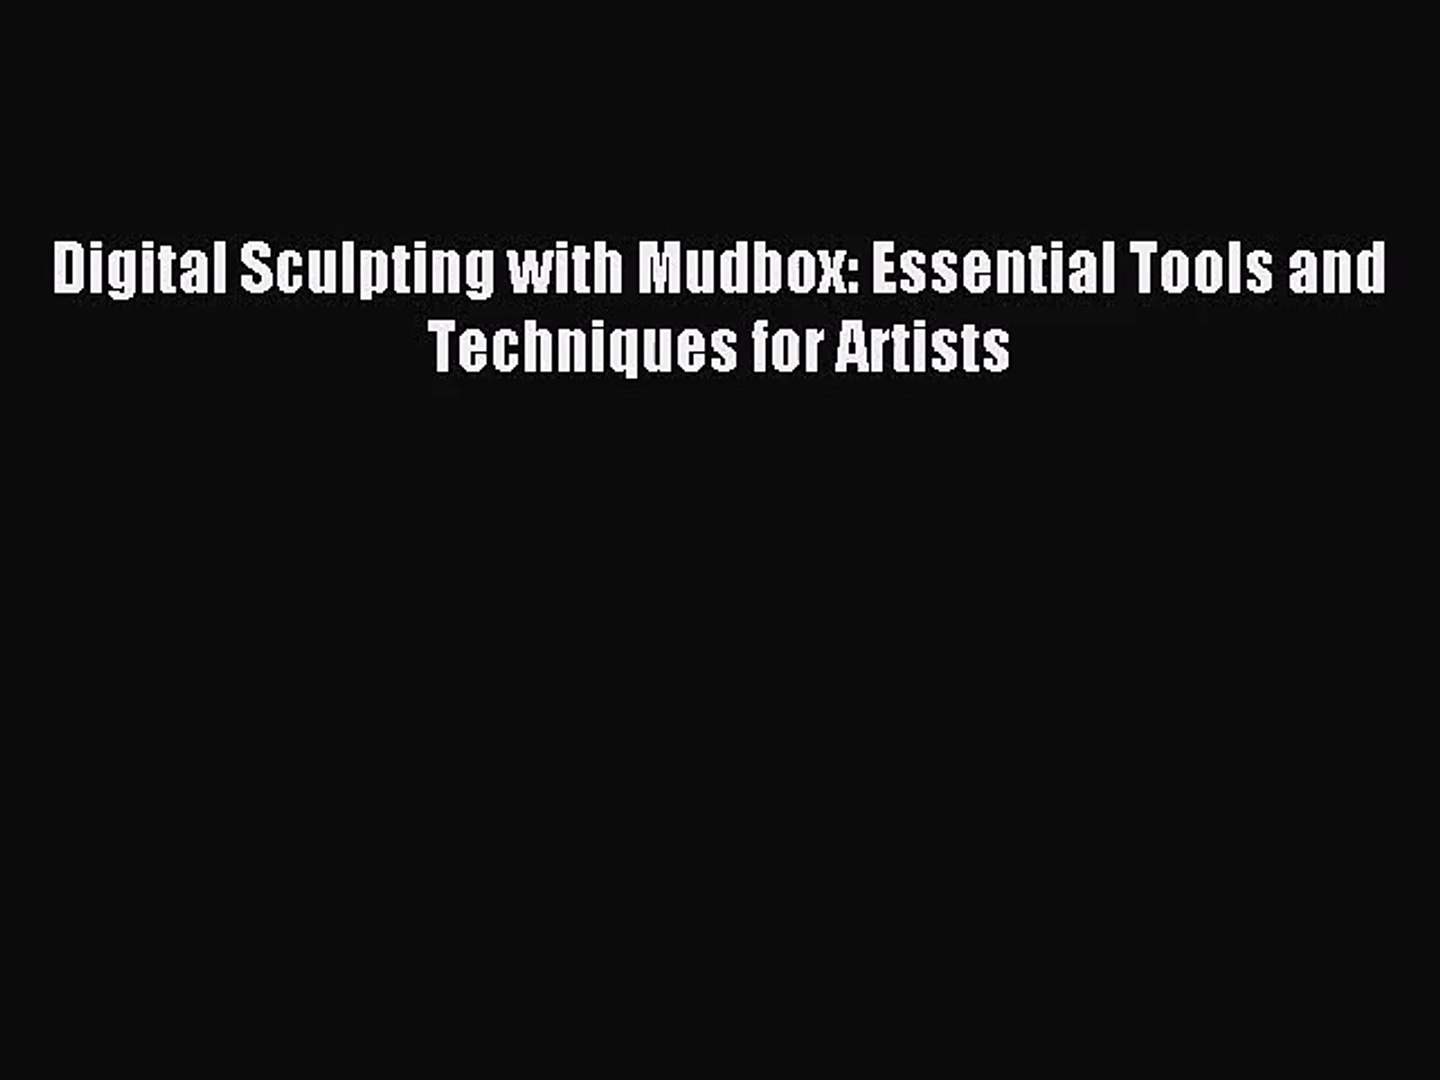 Digital Sculpting with Mudbox: Essential Tools and Techniques for Artists  Read Digital Sculpting